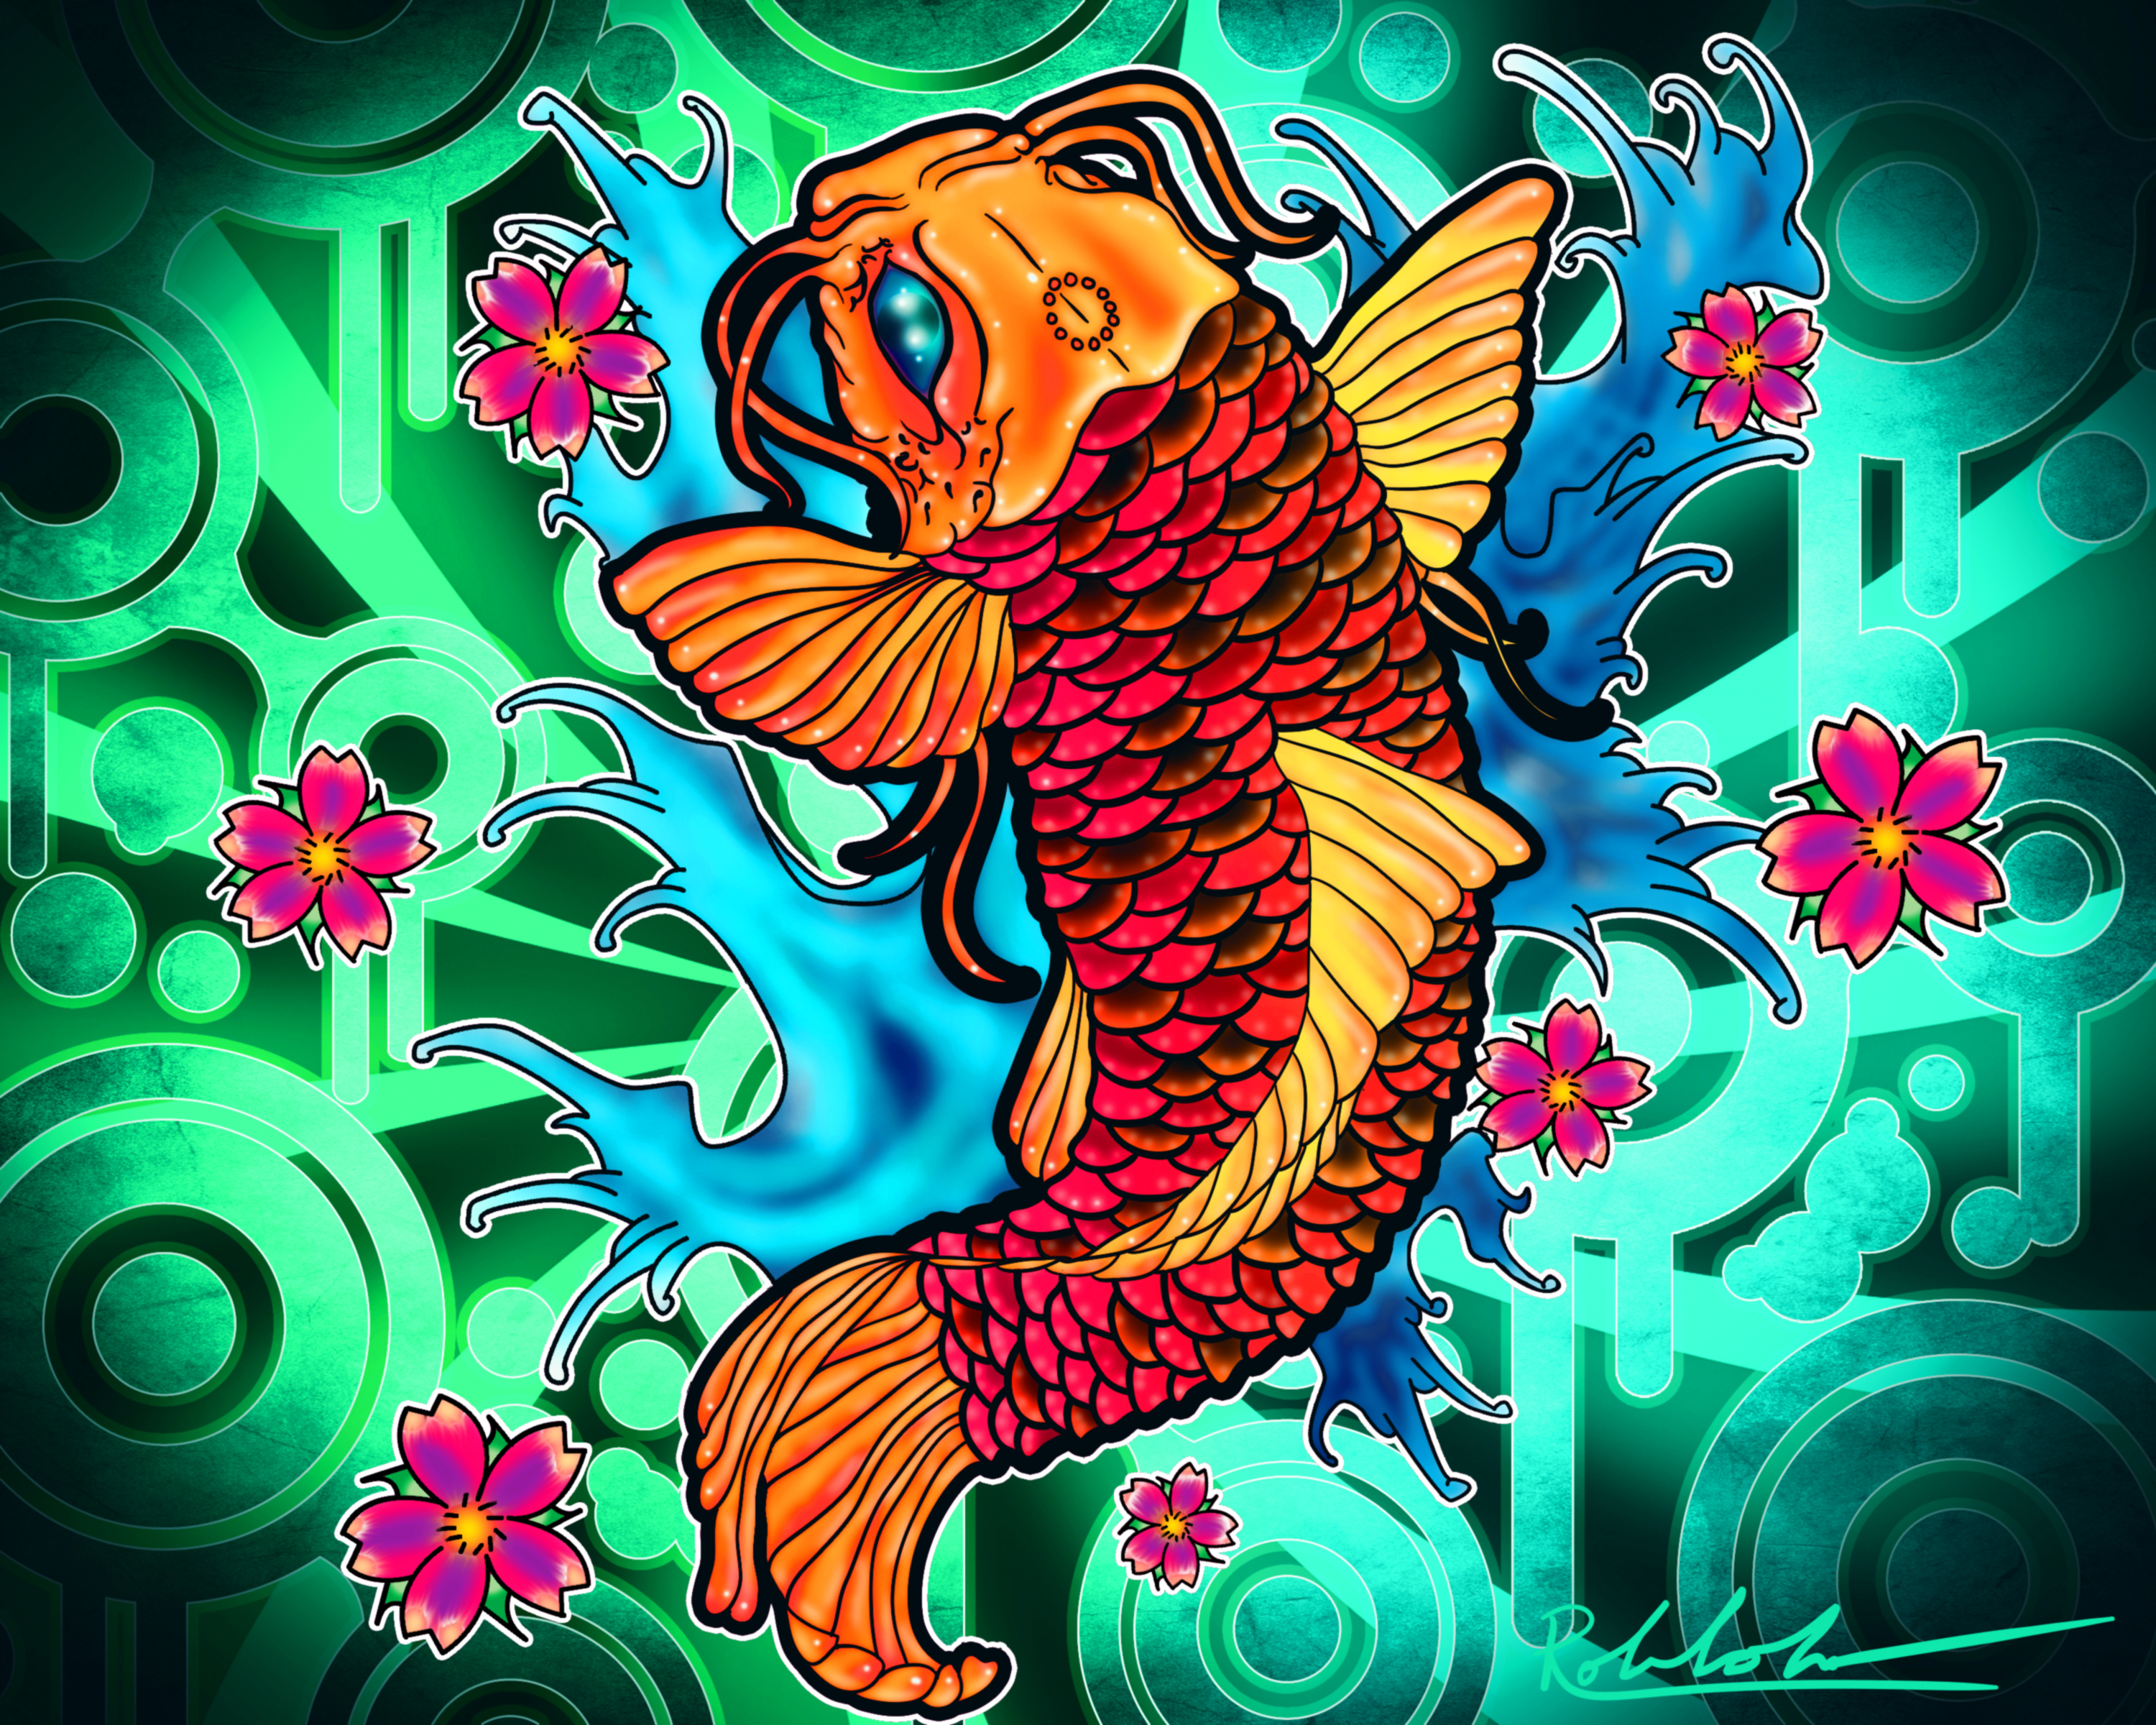 A koi fish having a dream by rowlee on deviantart for Koi wallpaper for walls